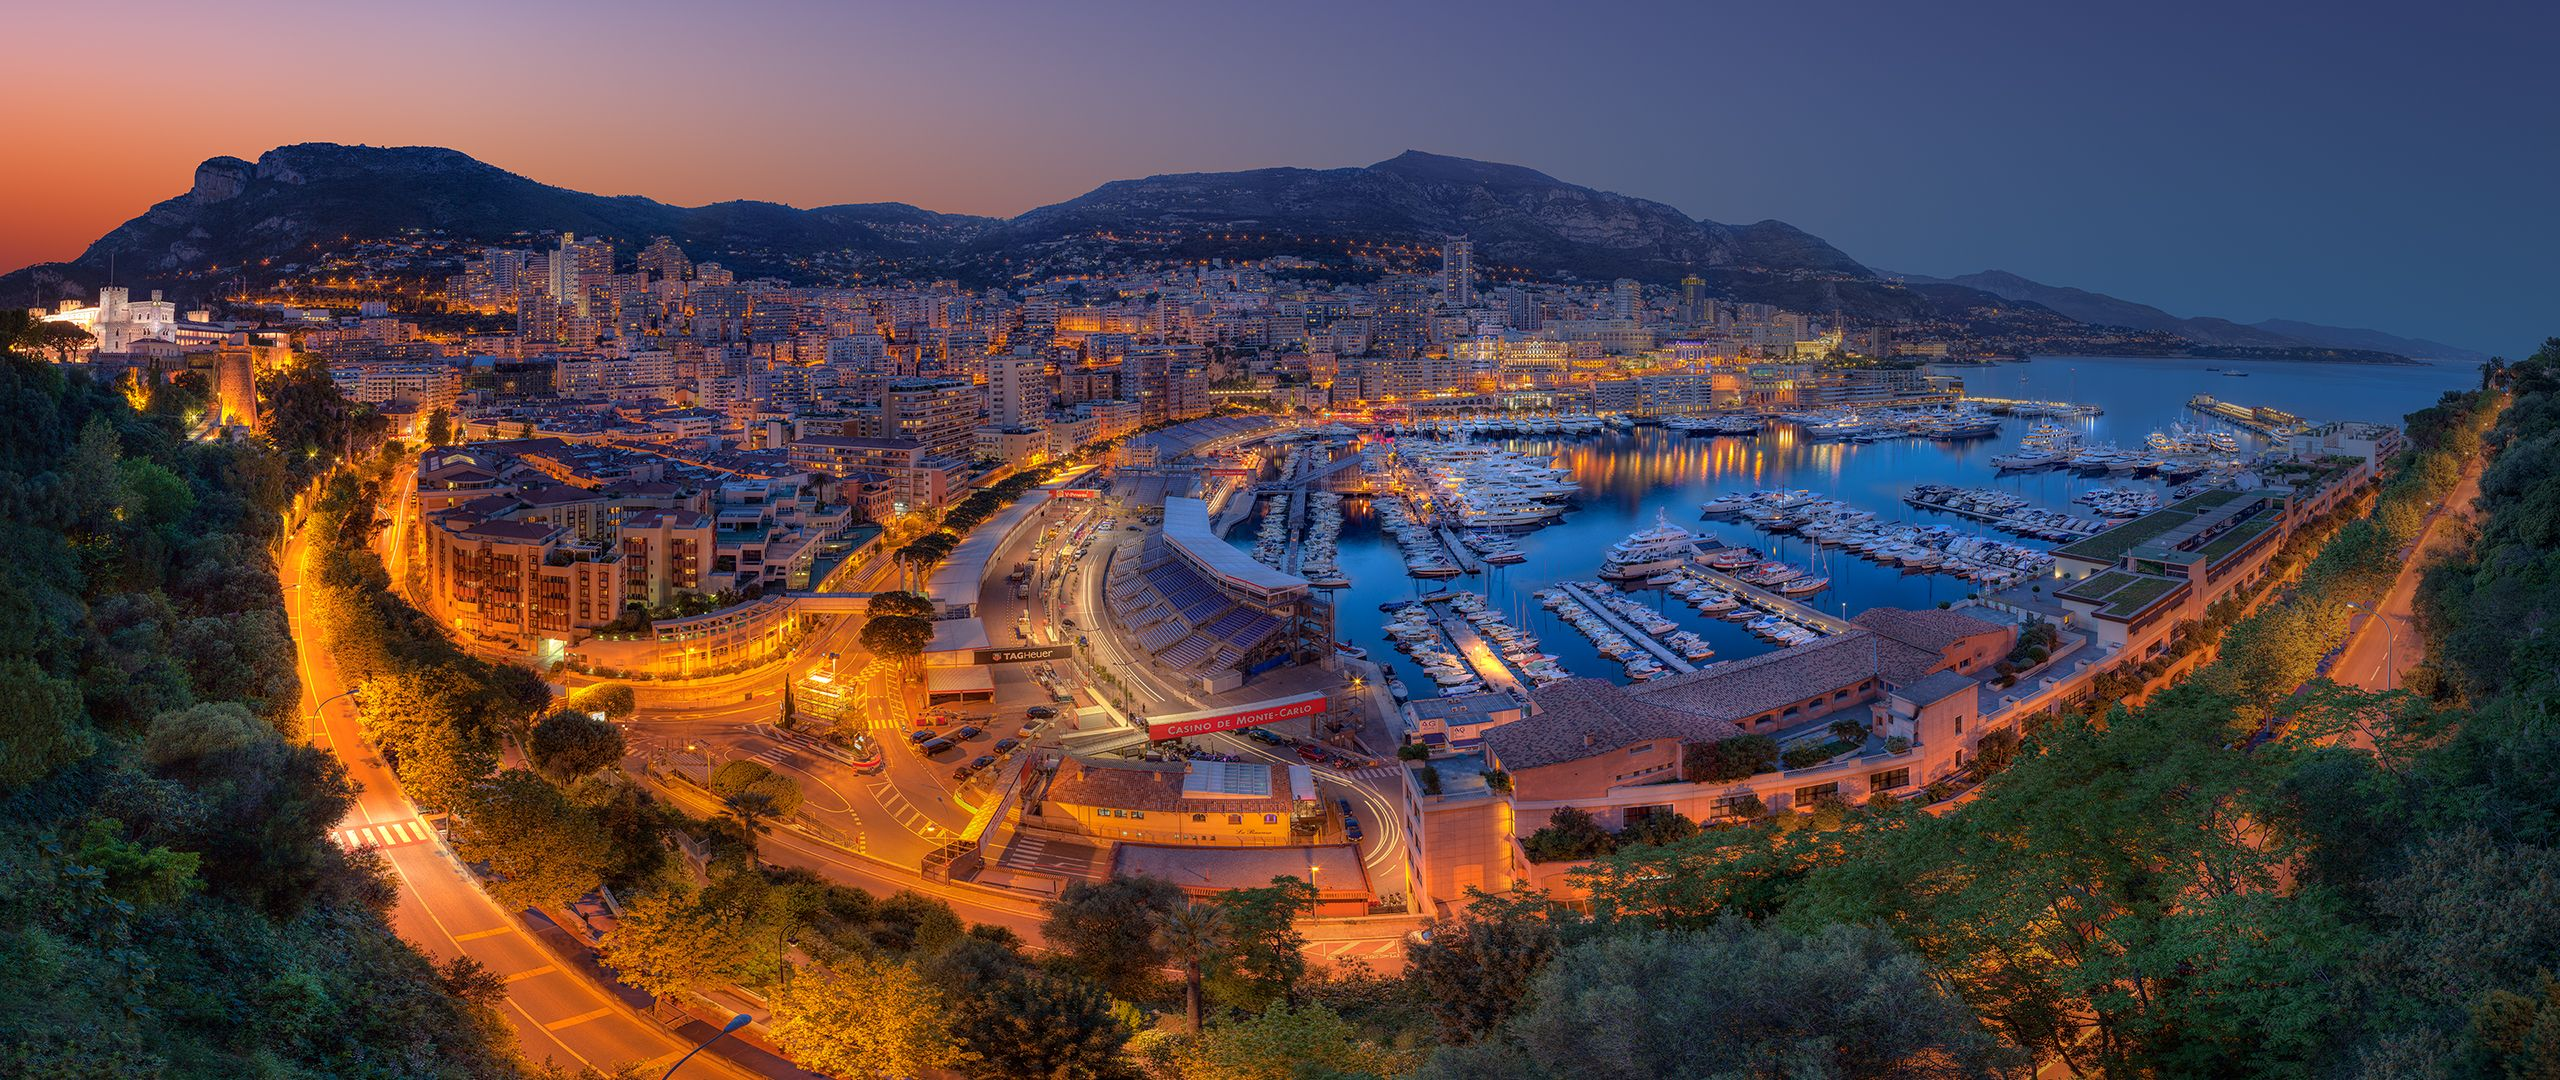 Hd wallpaper ultra wide - Explore Widescreen Wallpaper Monaco And More Top Ultra Wide